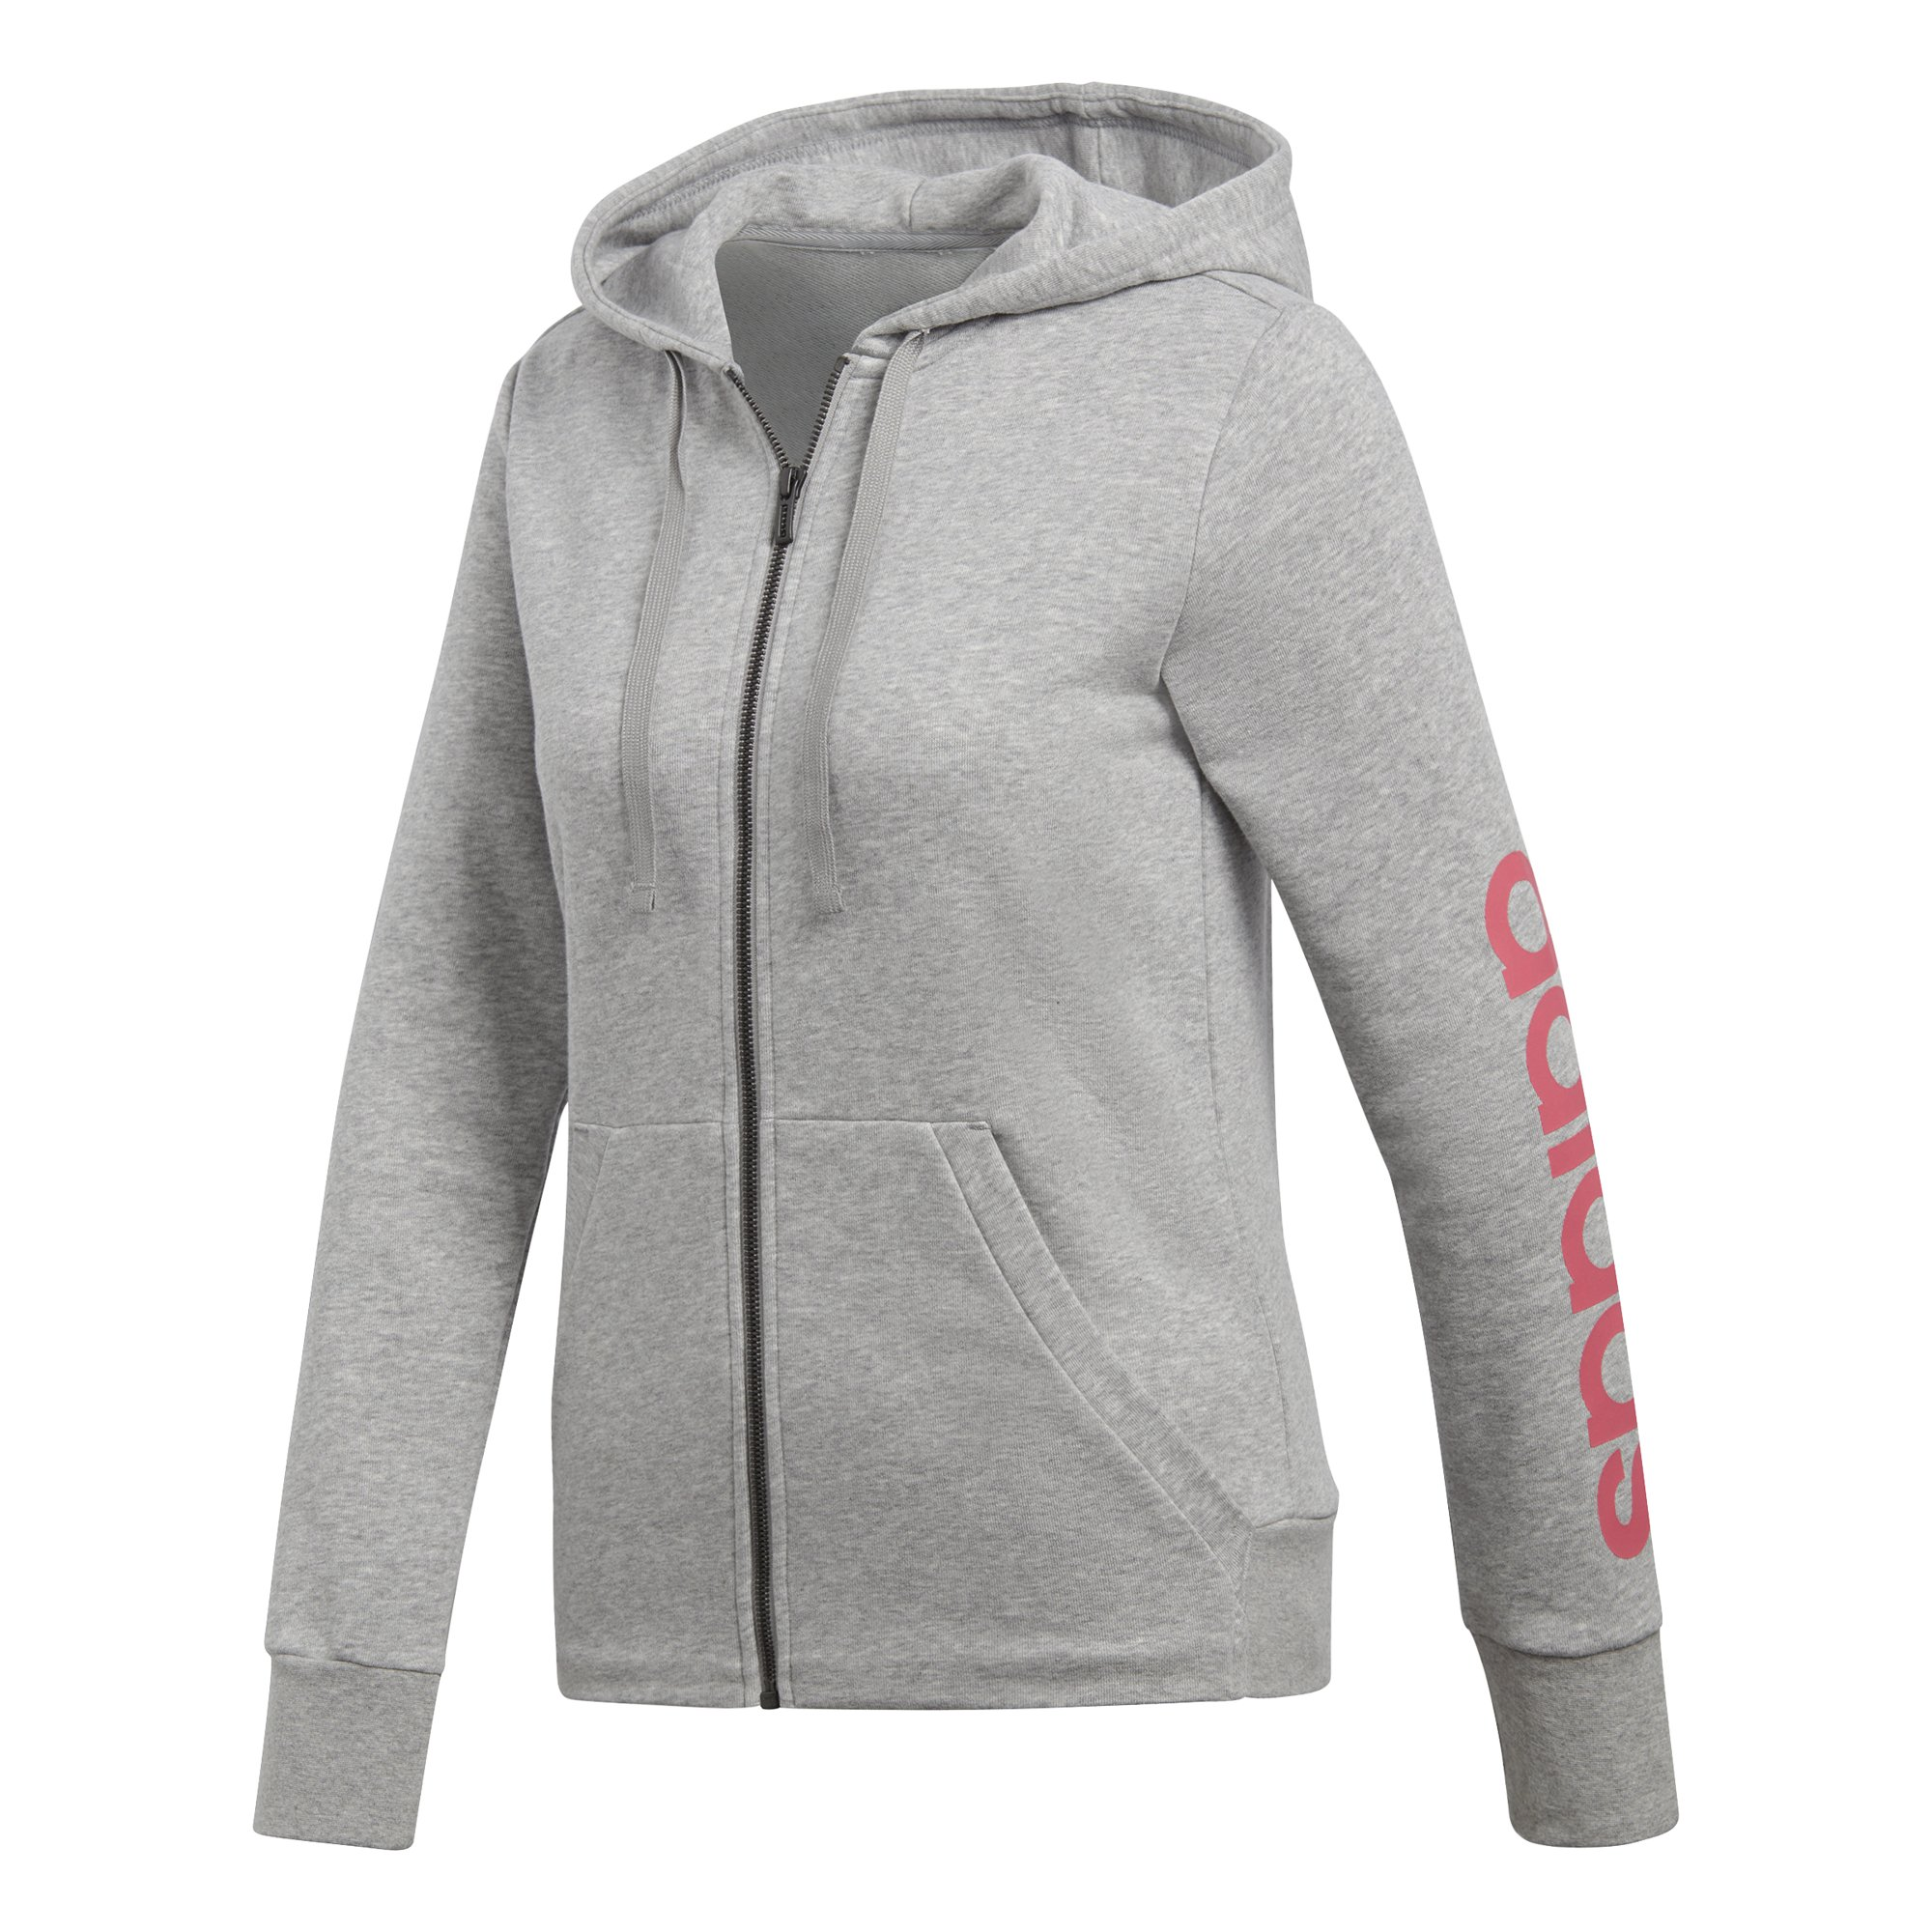 adidas Women's Essentials Linear Full Zip Fleece Hoodie, Medium Grey Heather/Real Pink, X-Small